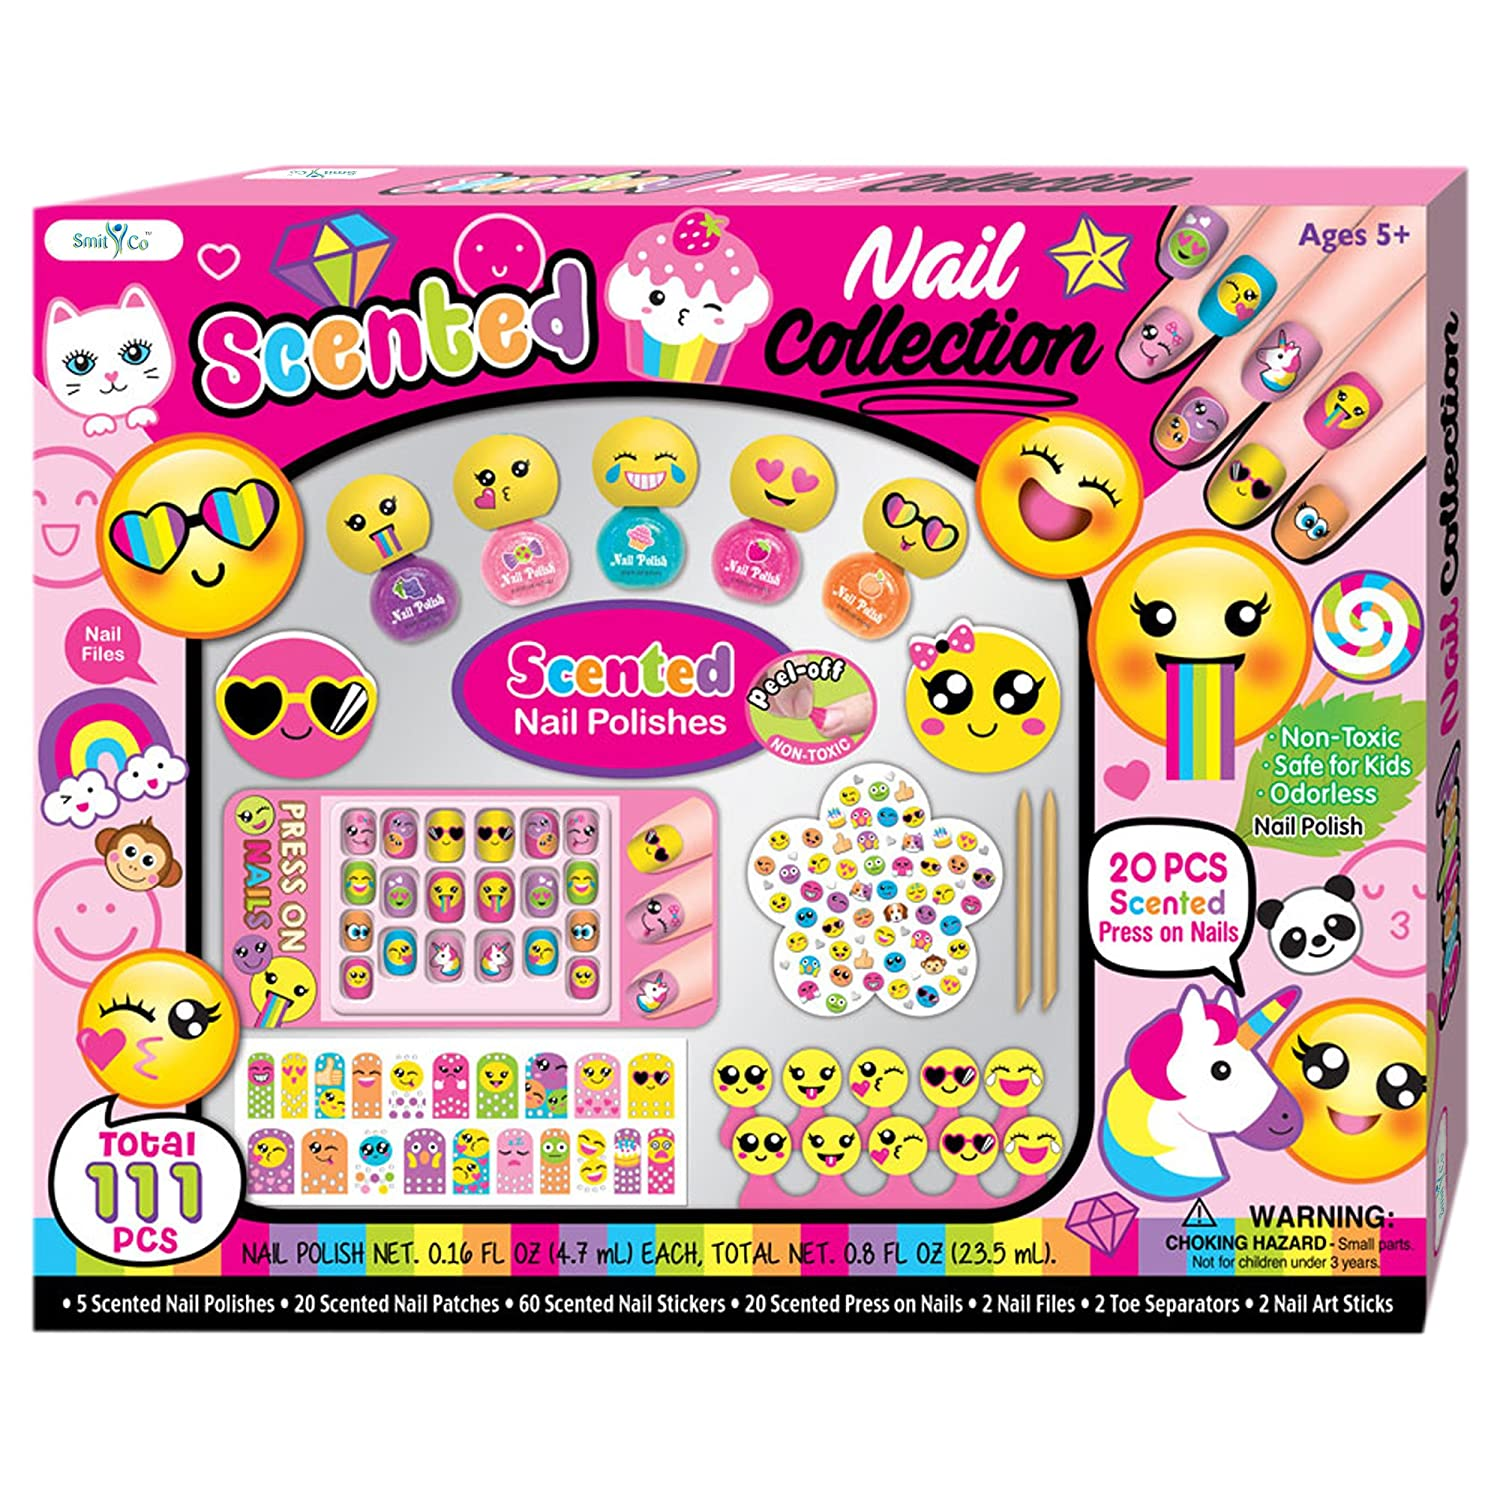 SMITCO Kids Nail Polish - 5, 6, 7, 8, 9 and 10 Year Old Girls Birthday Gifts - Non-Toxic Nail Art Kit That Includes Everything for a Mani Pedi